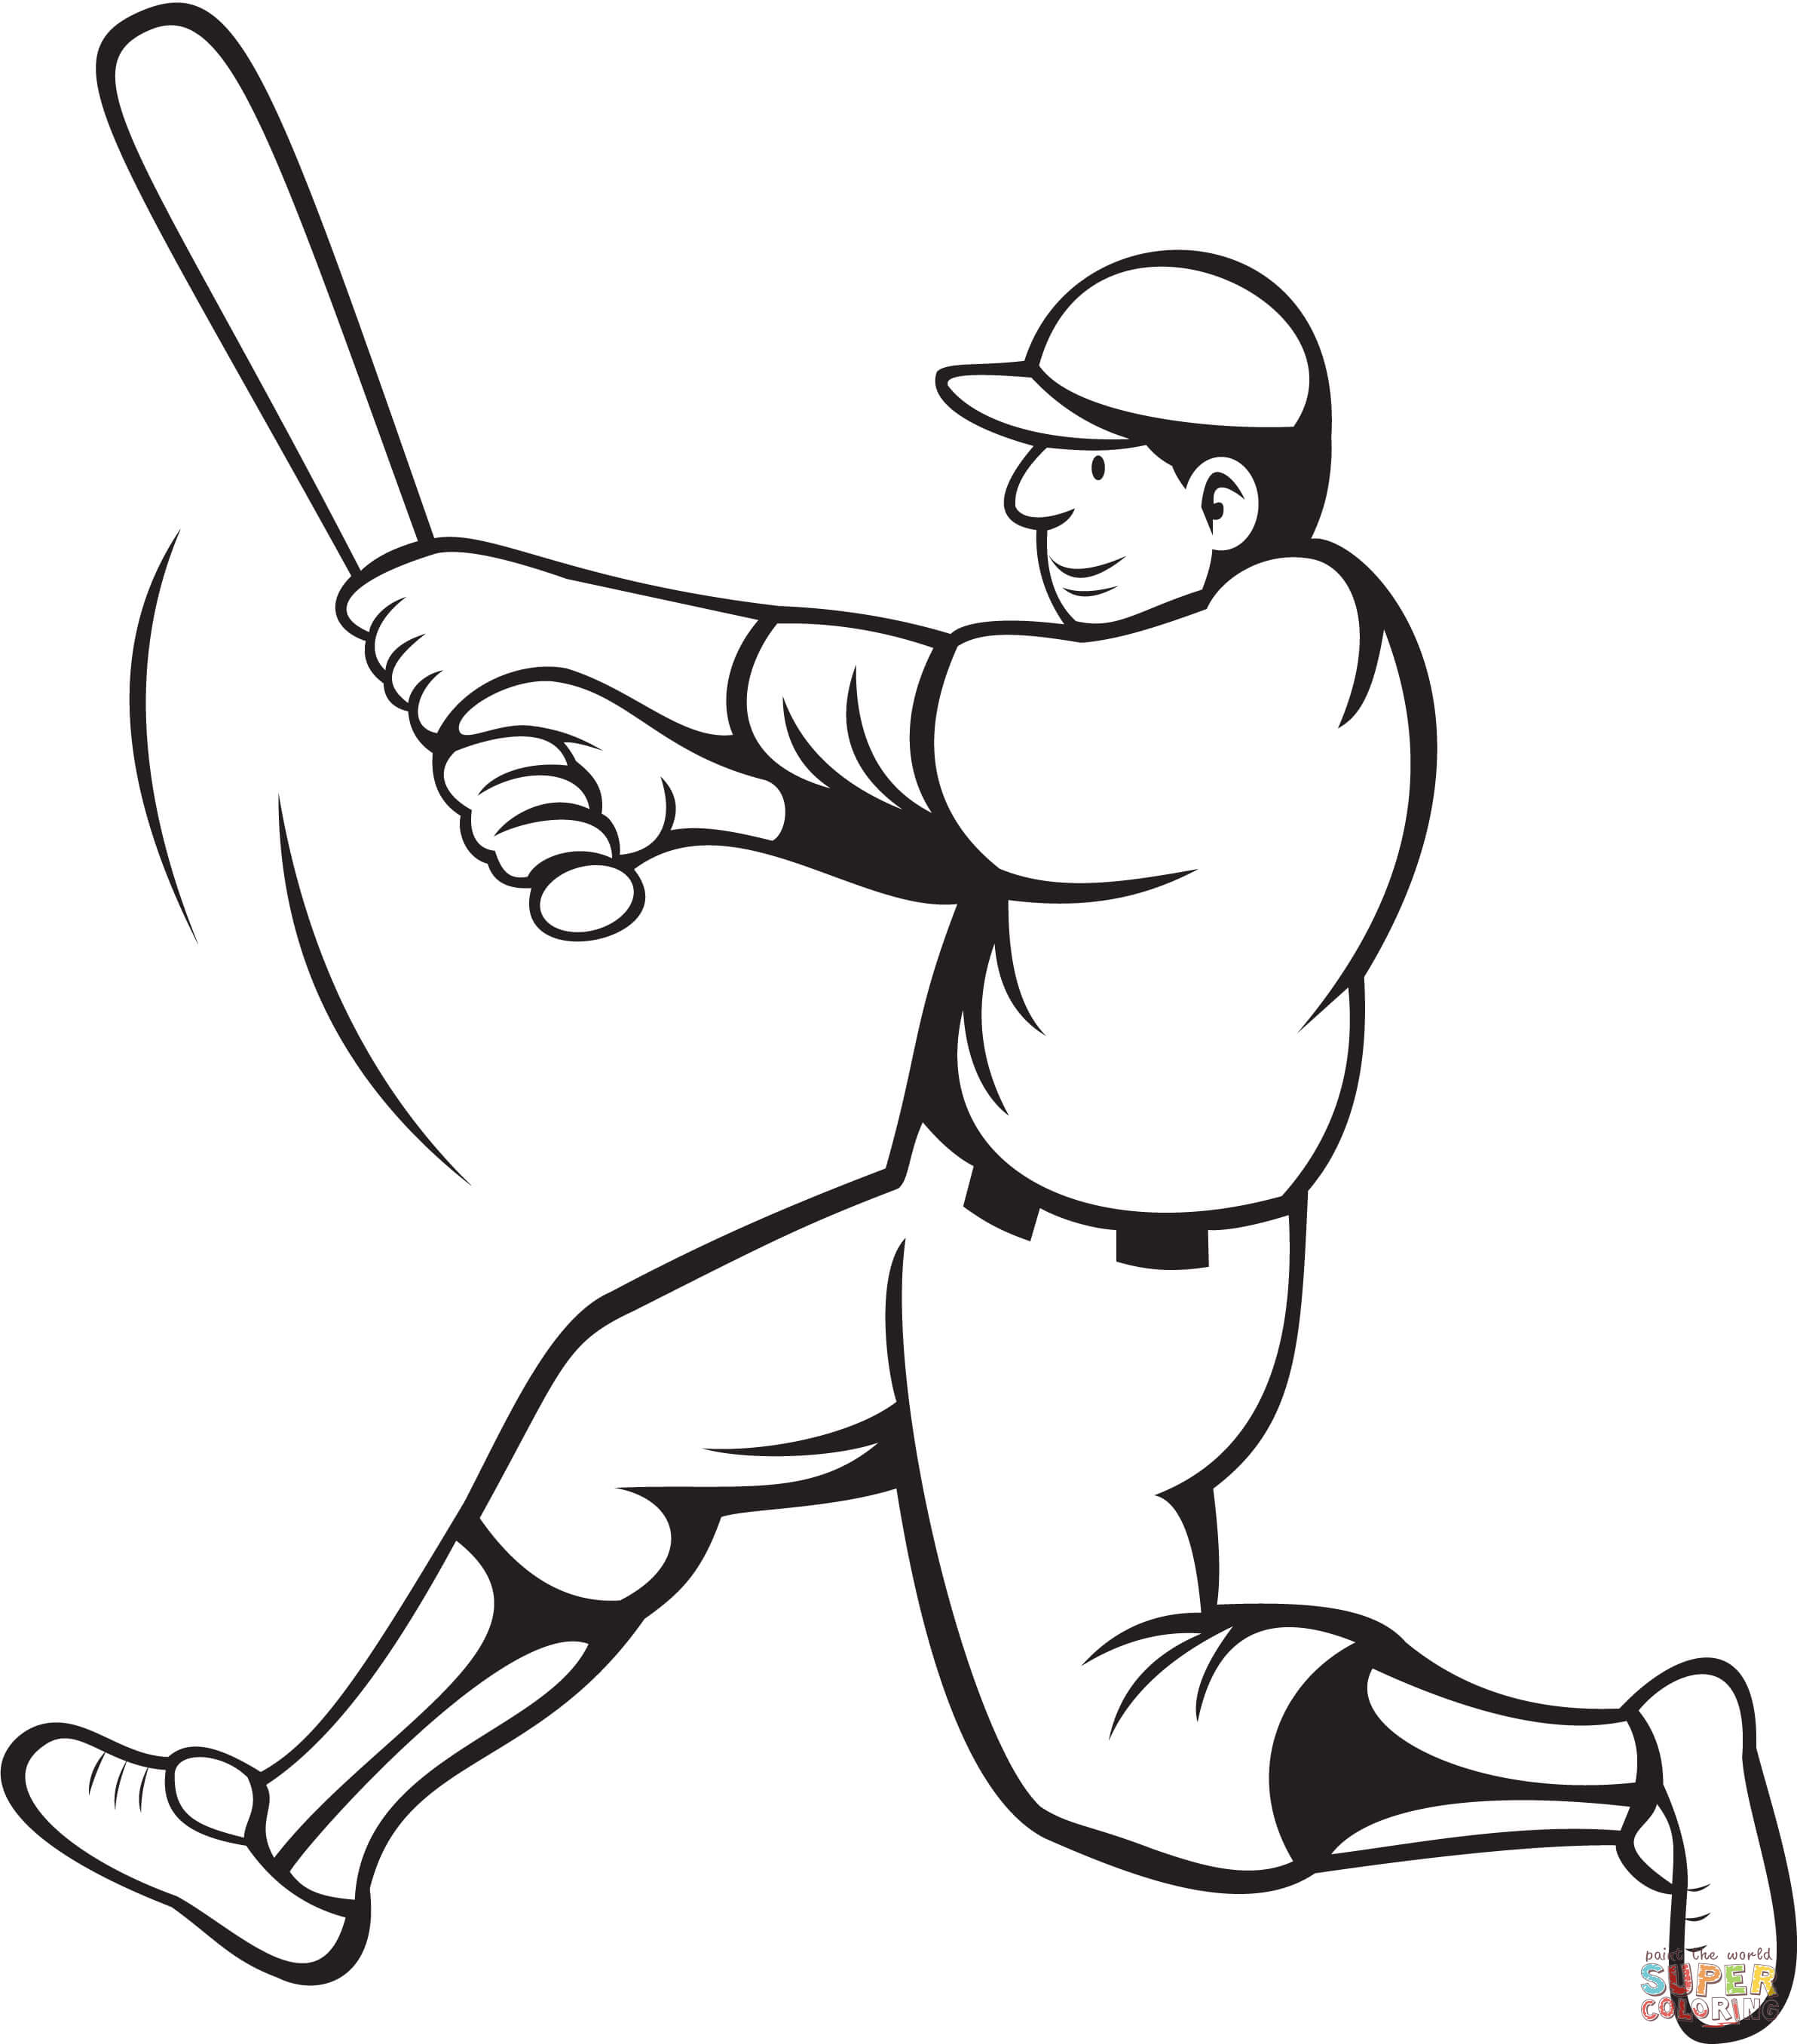 2384x2712 Energy Baseball Pictures To Print Coloring Pag